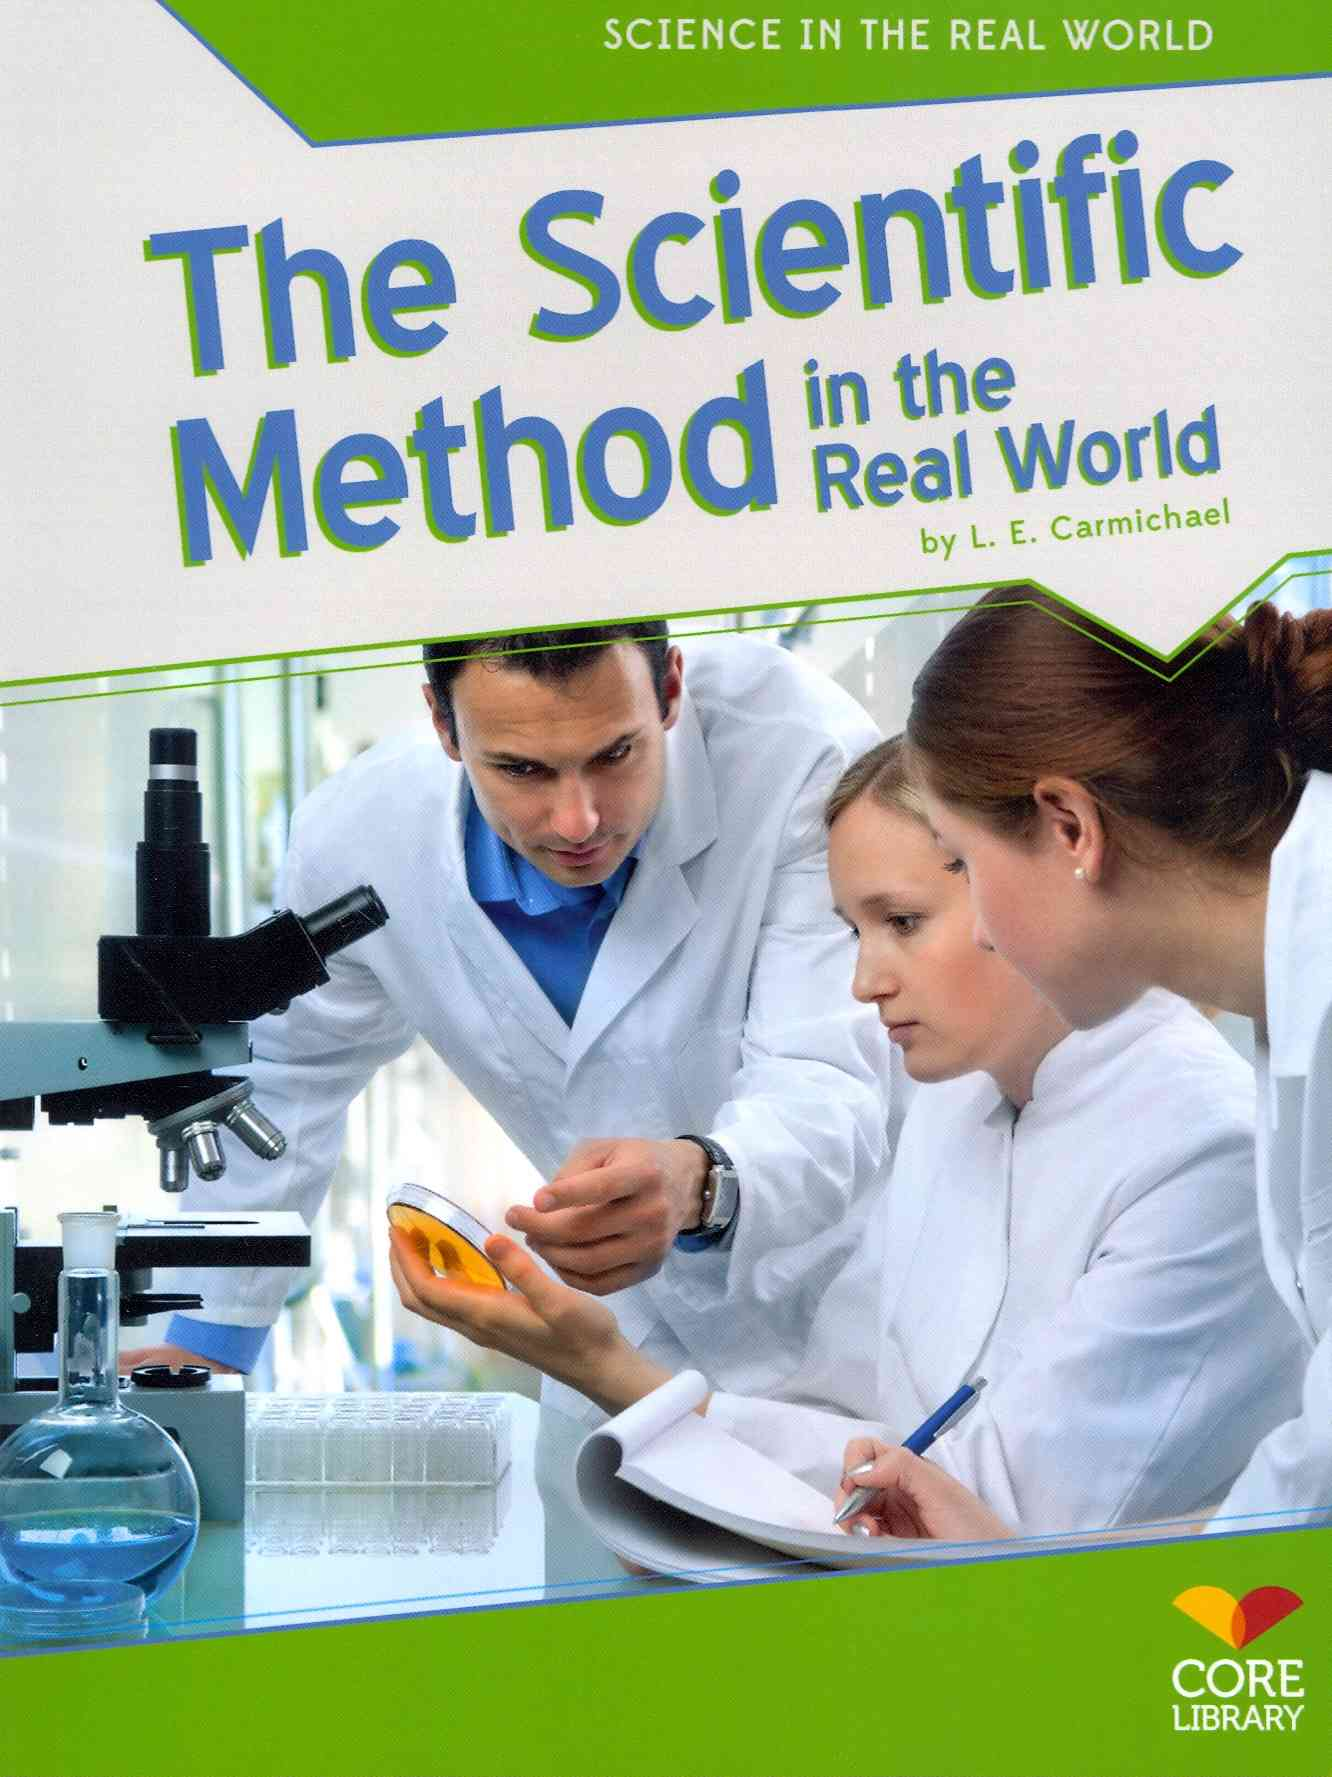 The Scientific Method in the Real World By Carmichael, L. E.